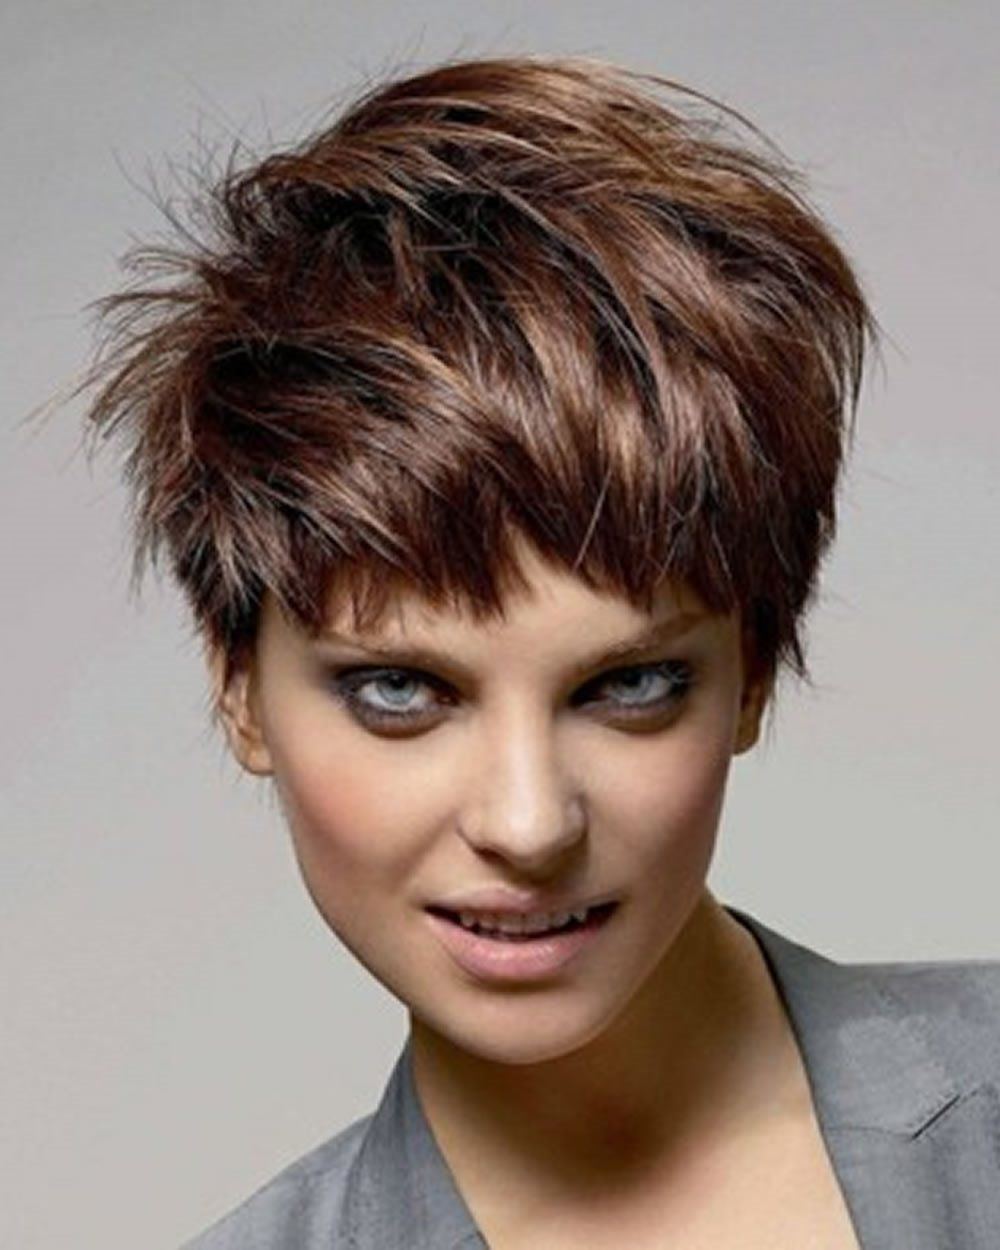 15 Pixie Or Short Hairstyle Images 2019 Short Hair Cut